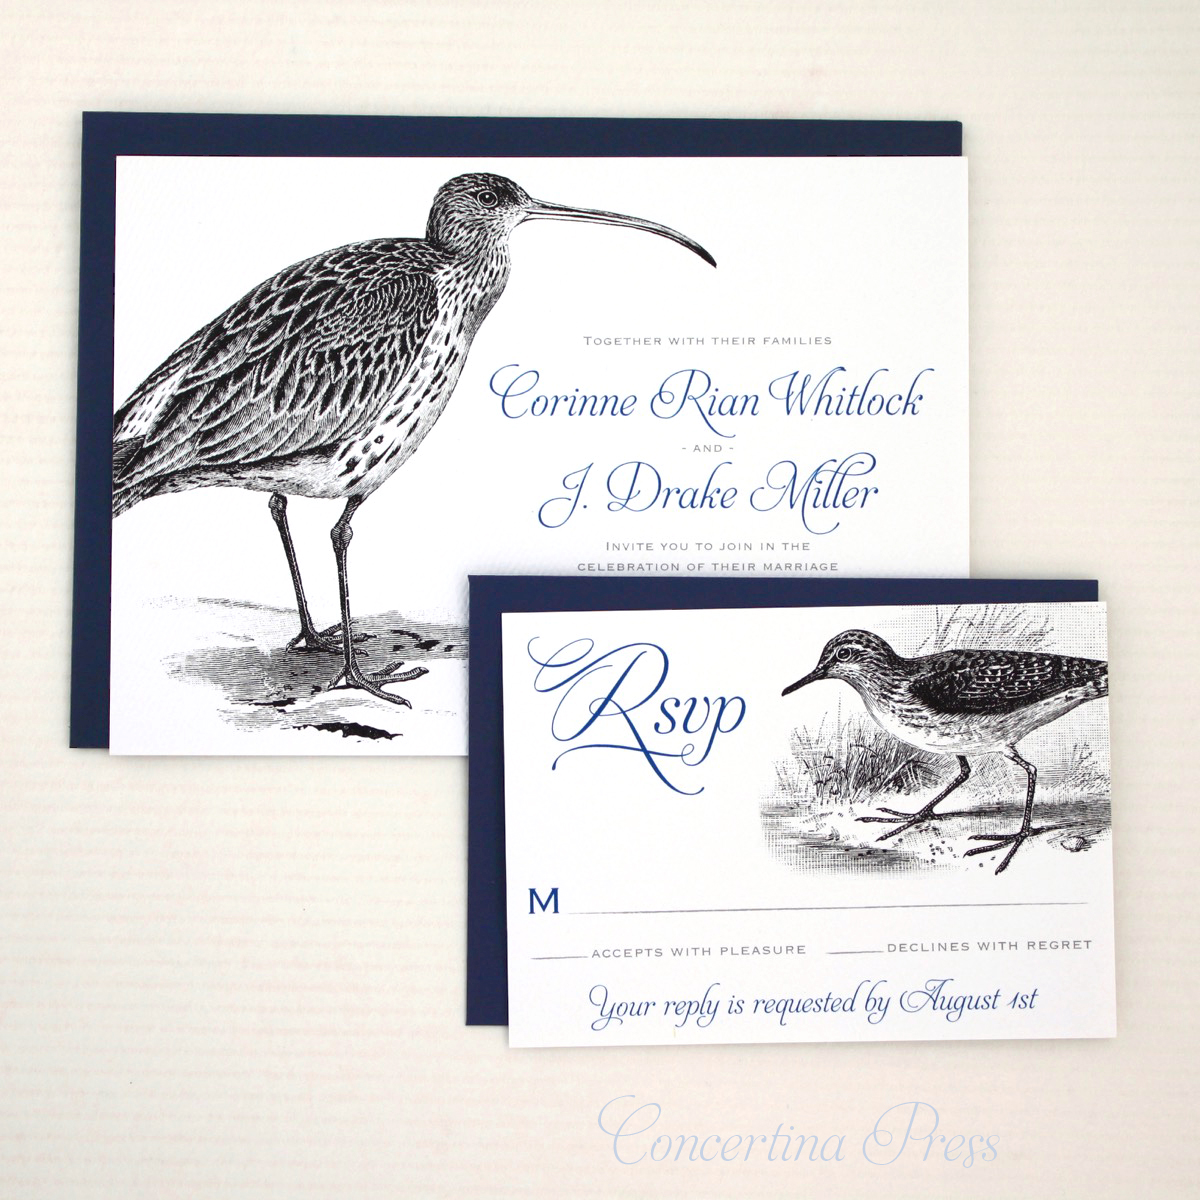 Curlew and Sandpiper Wedding Invitations for Lovebirds who LOVE birds - from Concertina Press